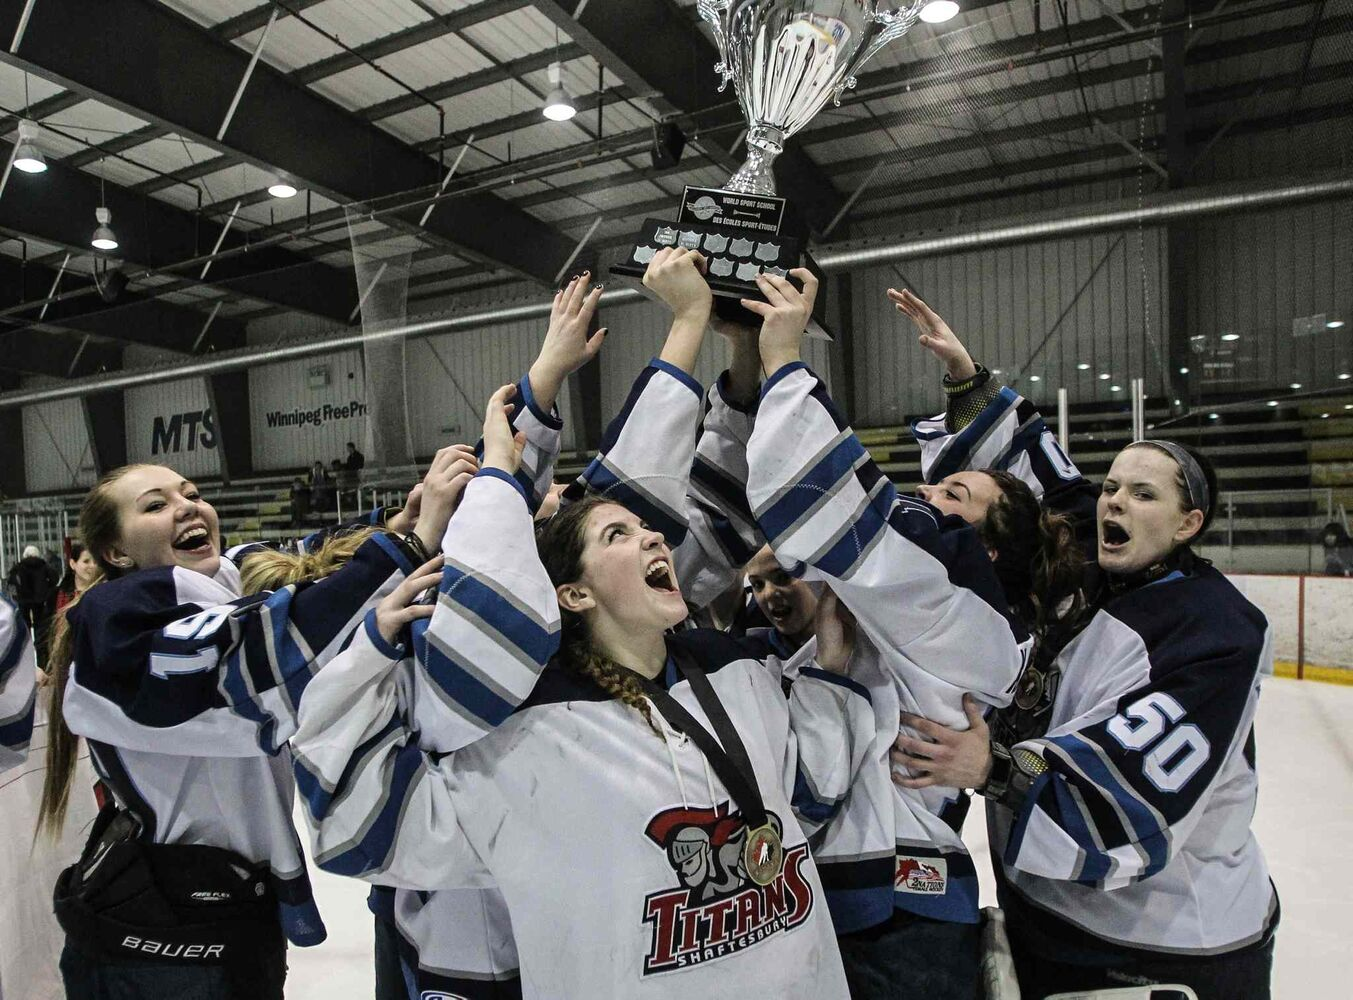 Justine Fredette (centre) cheers as her Shaftesbury Hockey Academy Titans teammates hoist the trophy after defeating the Kelowna, B.C.-based Pursuit of Excellence Hockey Academy 5-2 in the gold-medal game at the Female World Sport School Challenge Sunday at MTS Iceplex. Fredette scored a hat trick to lead her team to victory.